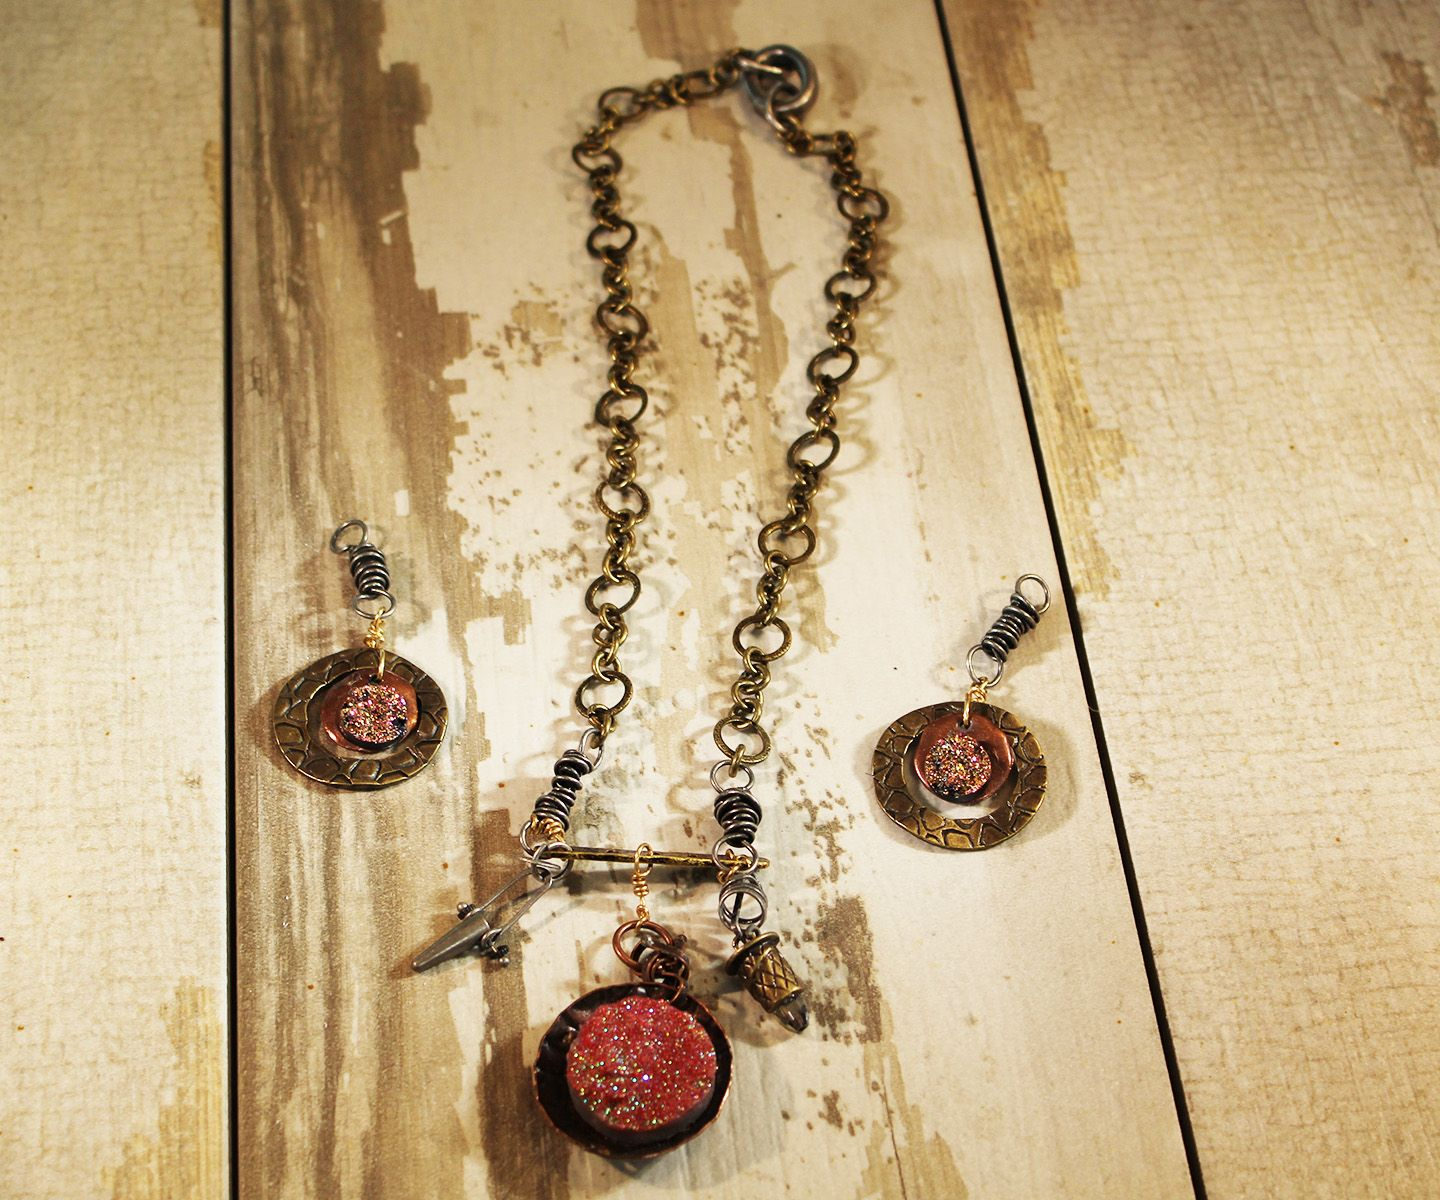 Industrial Inspired Chic Dizzy for Druzy Necklace and Earrings. see more at: http://www.beadelish.com